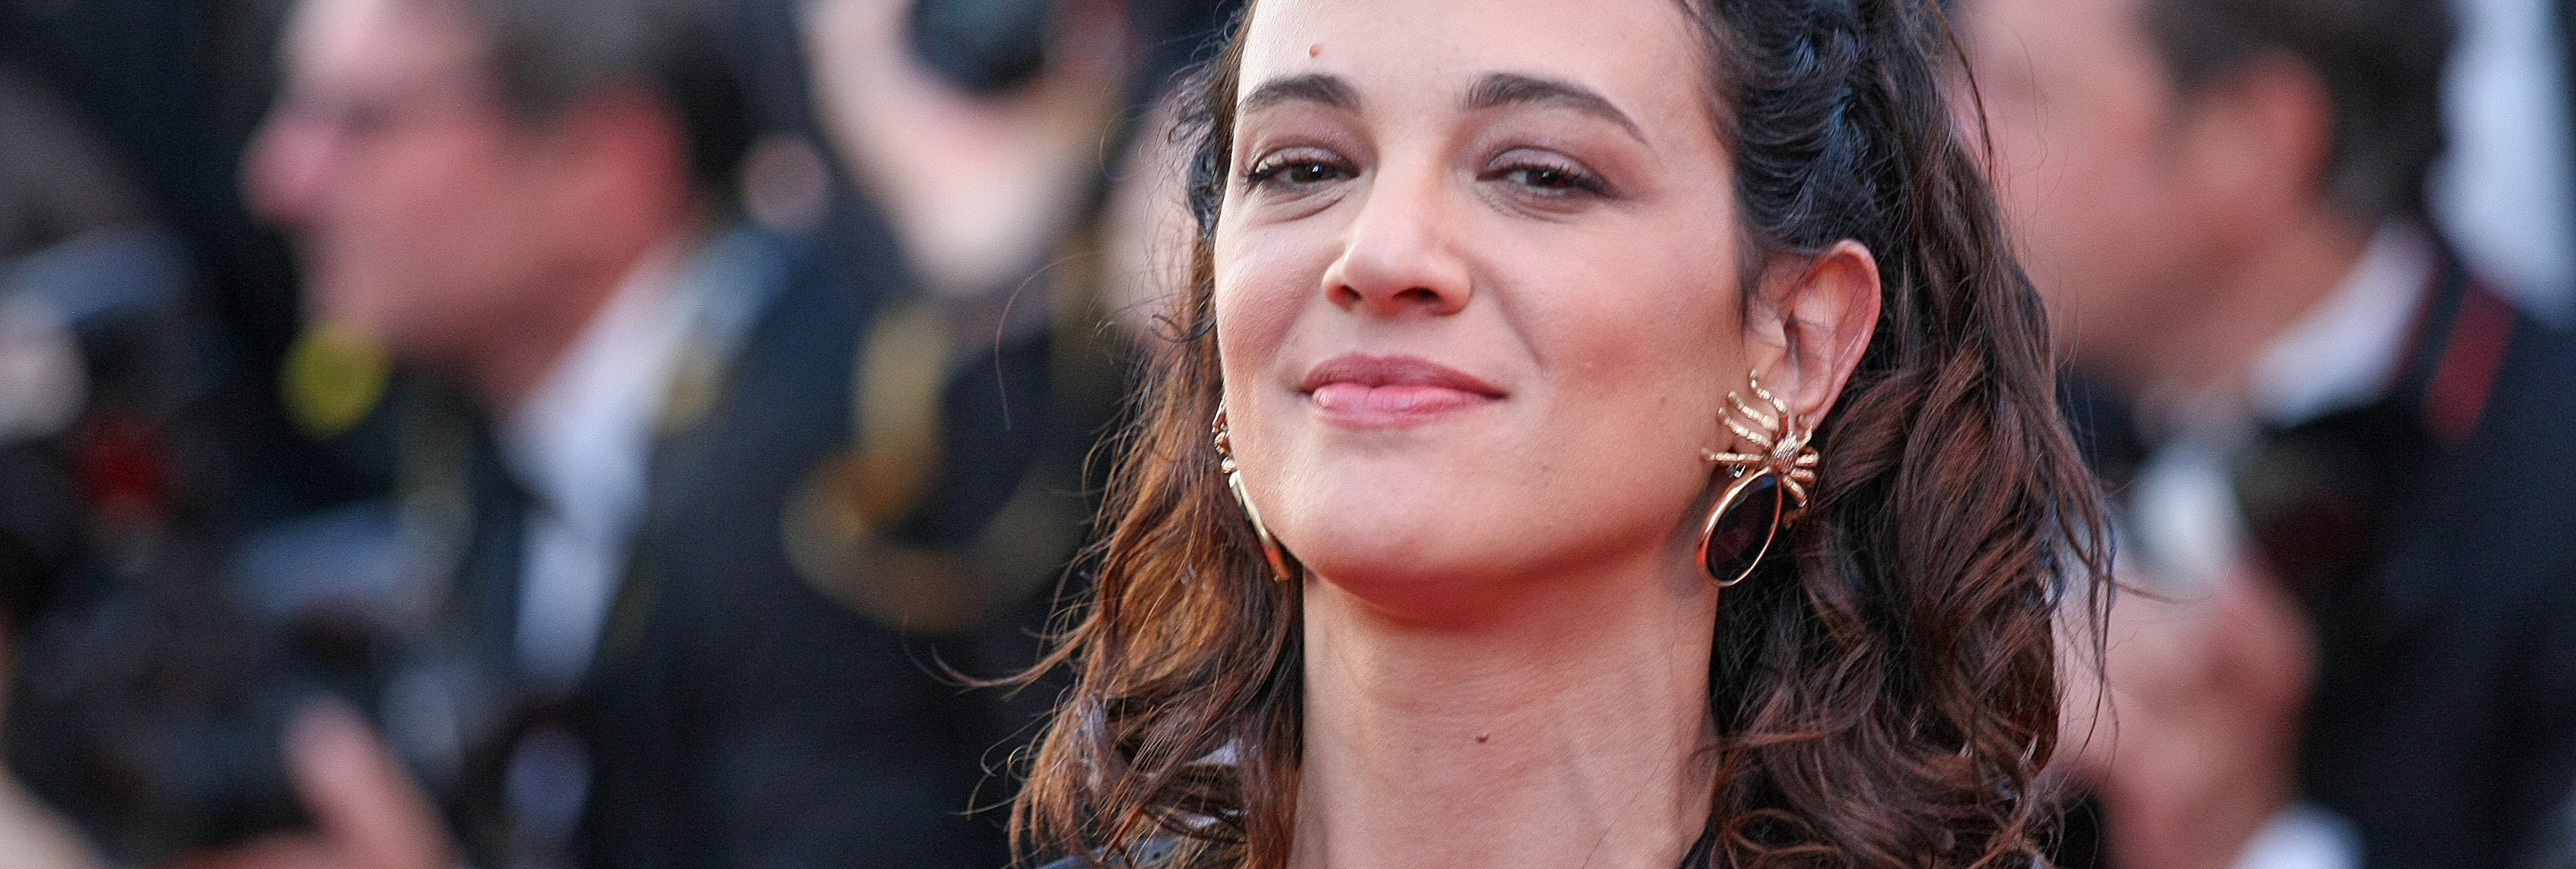 Asia Argento, pionera en el movimiento #MeToo, acusada de abuso sexual a un menor